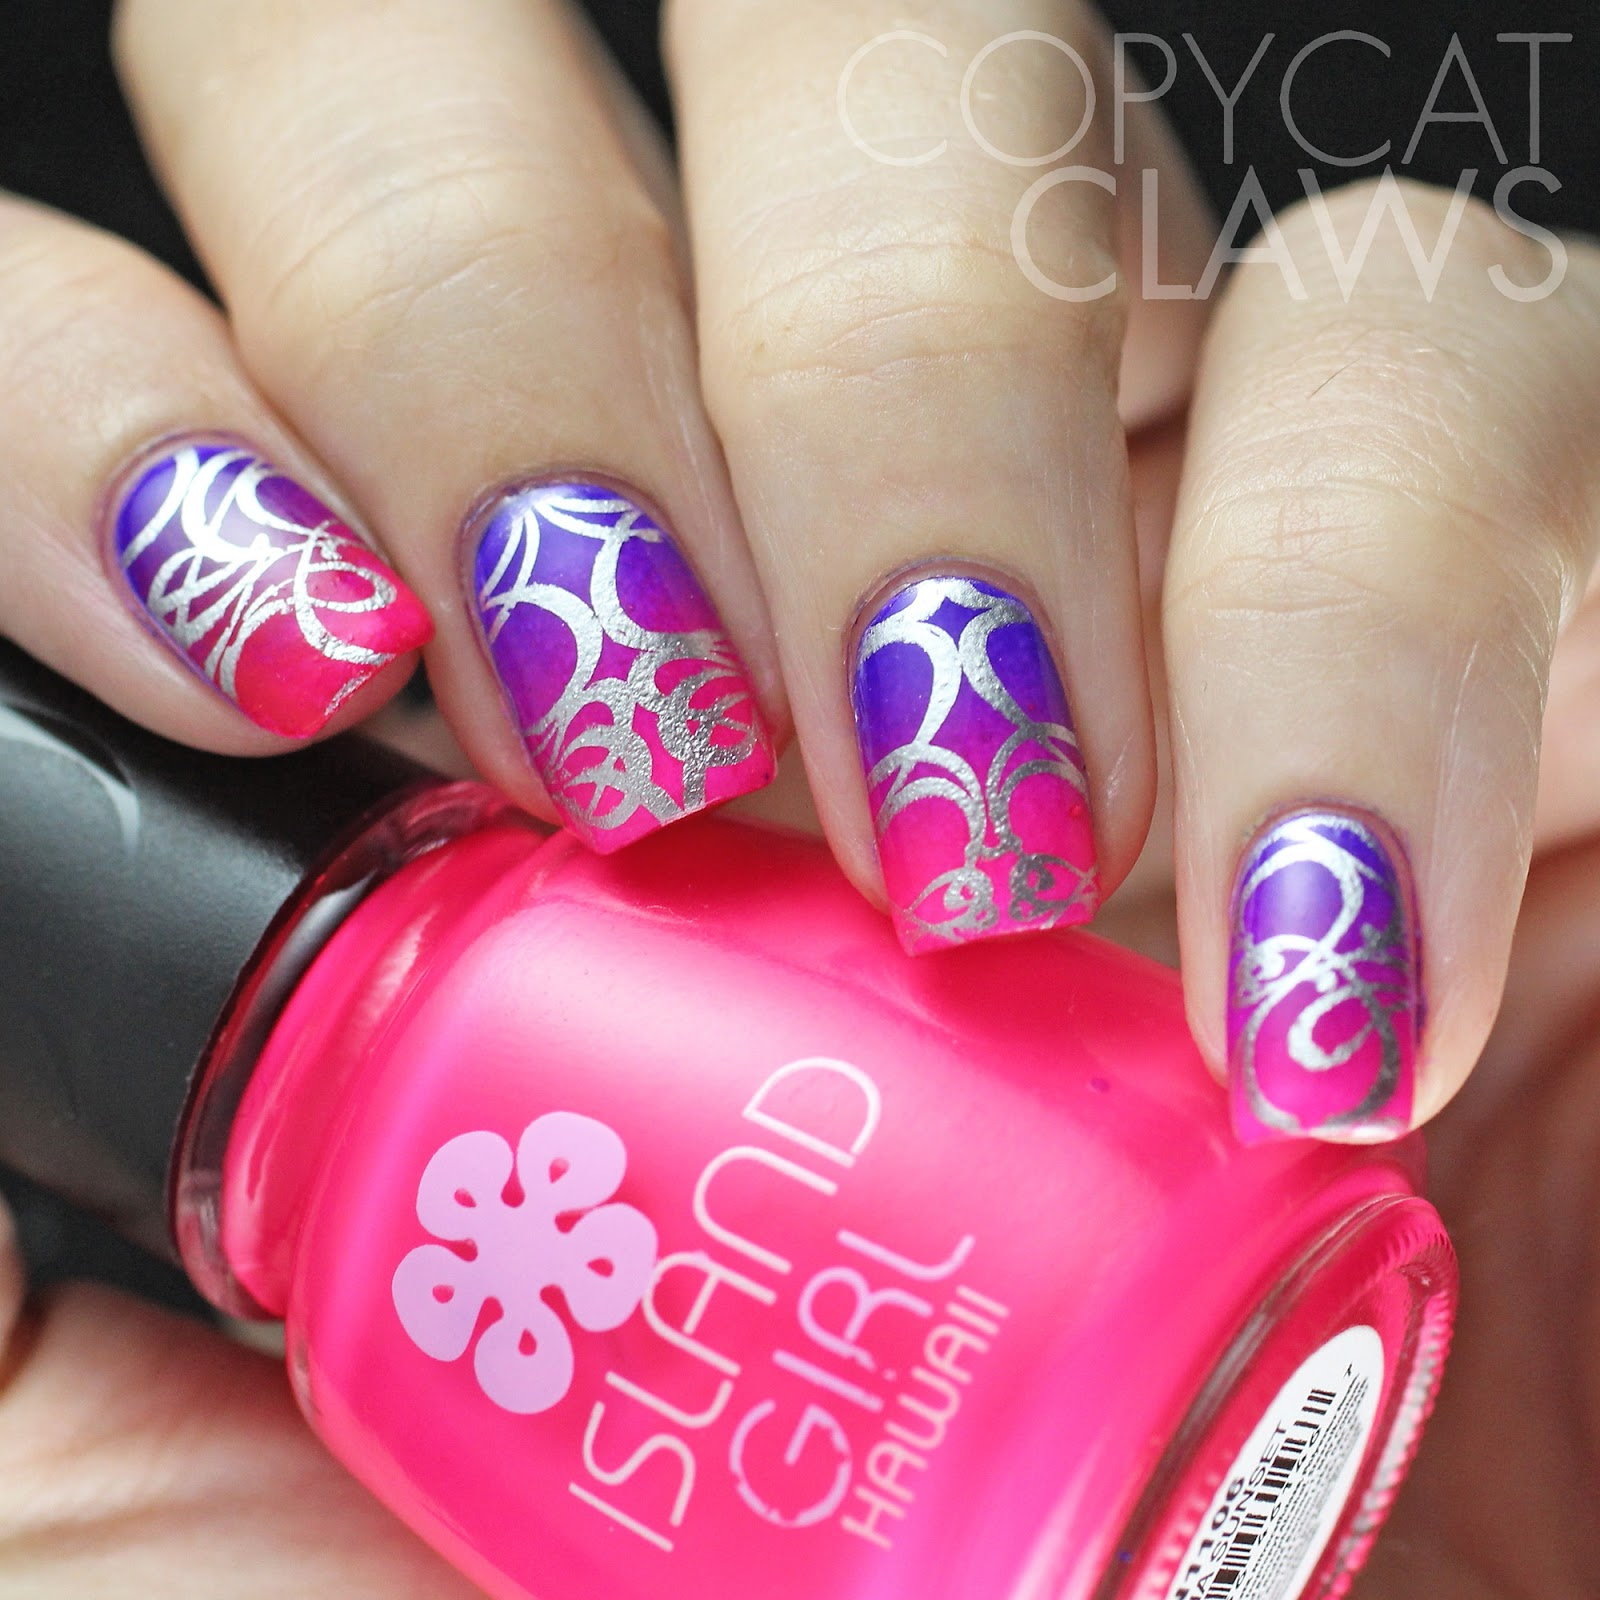 Copycat Claws: It Girl Nail Art Stamping Plates Review